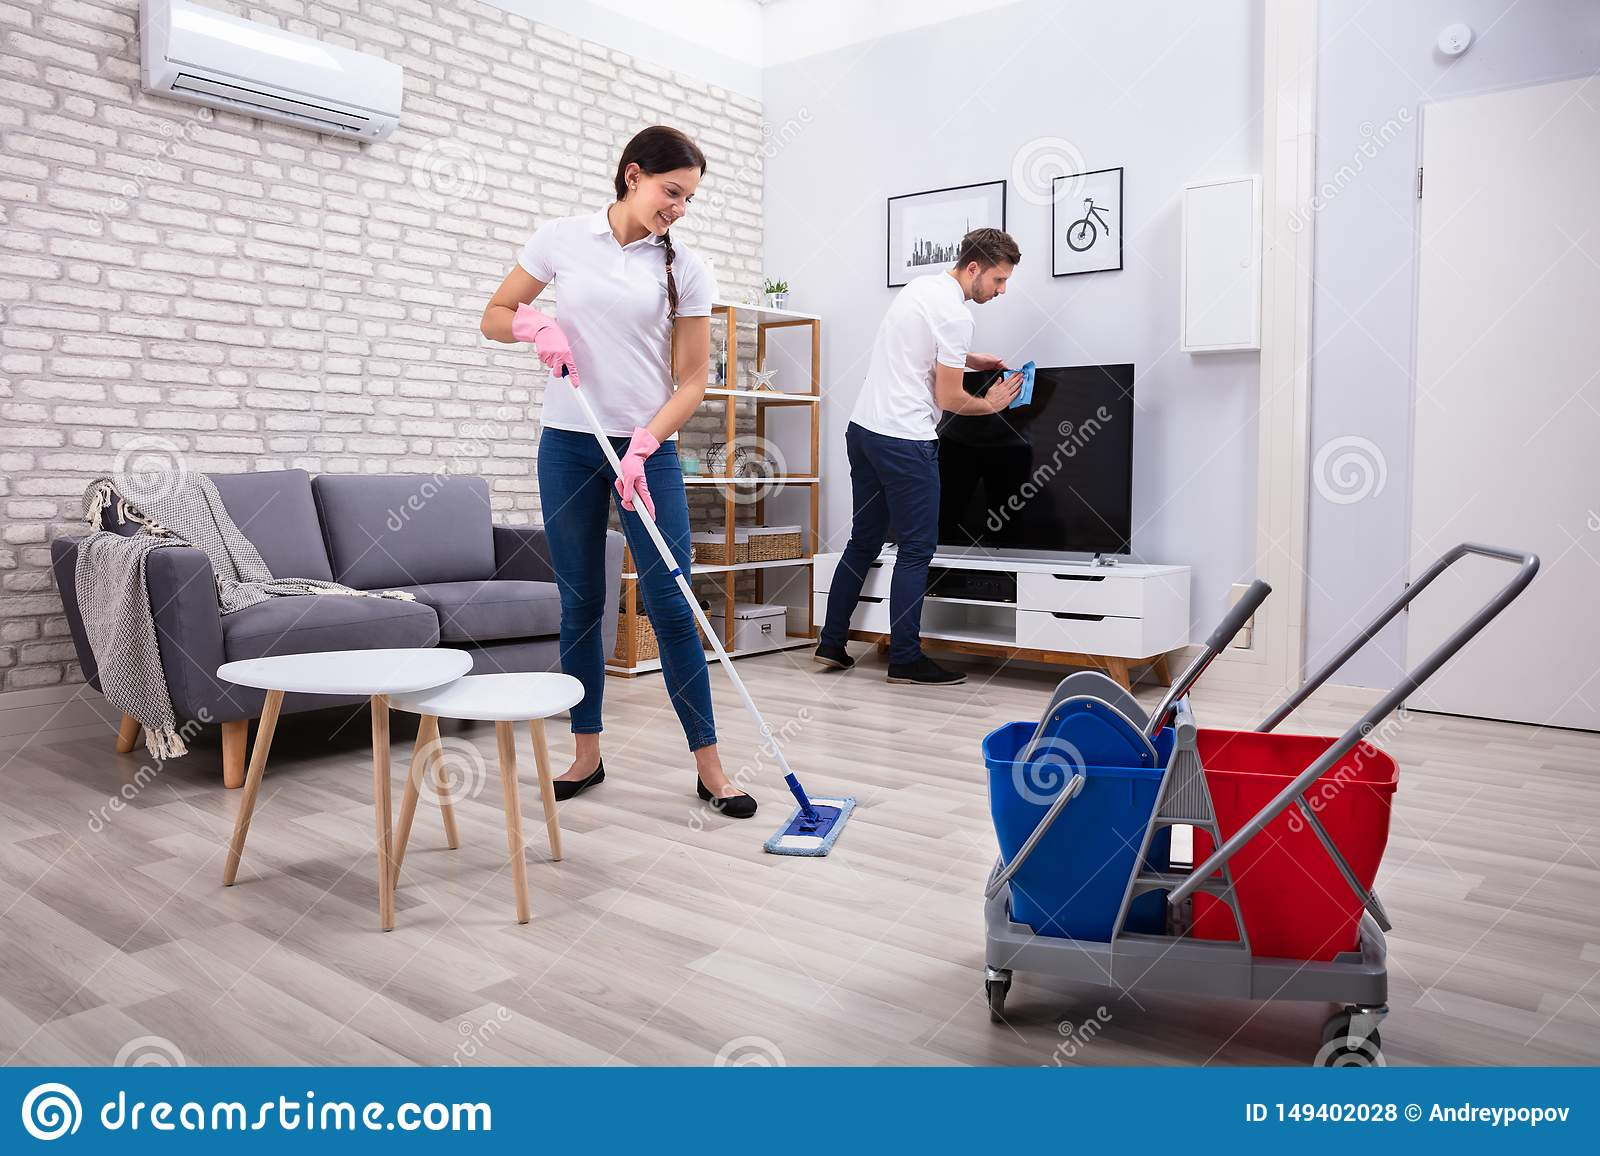 Cleaning Television And Floor